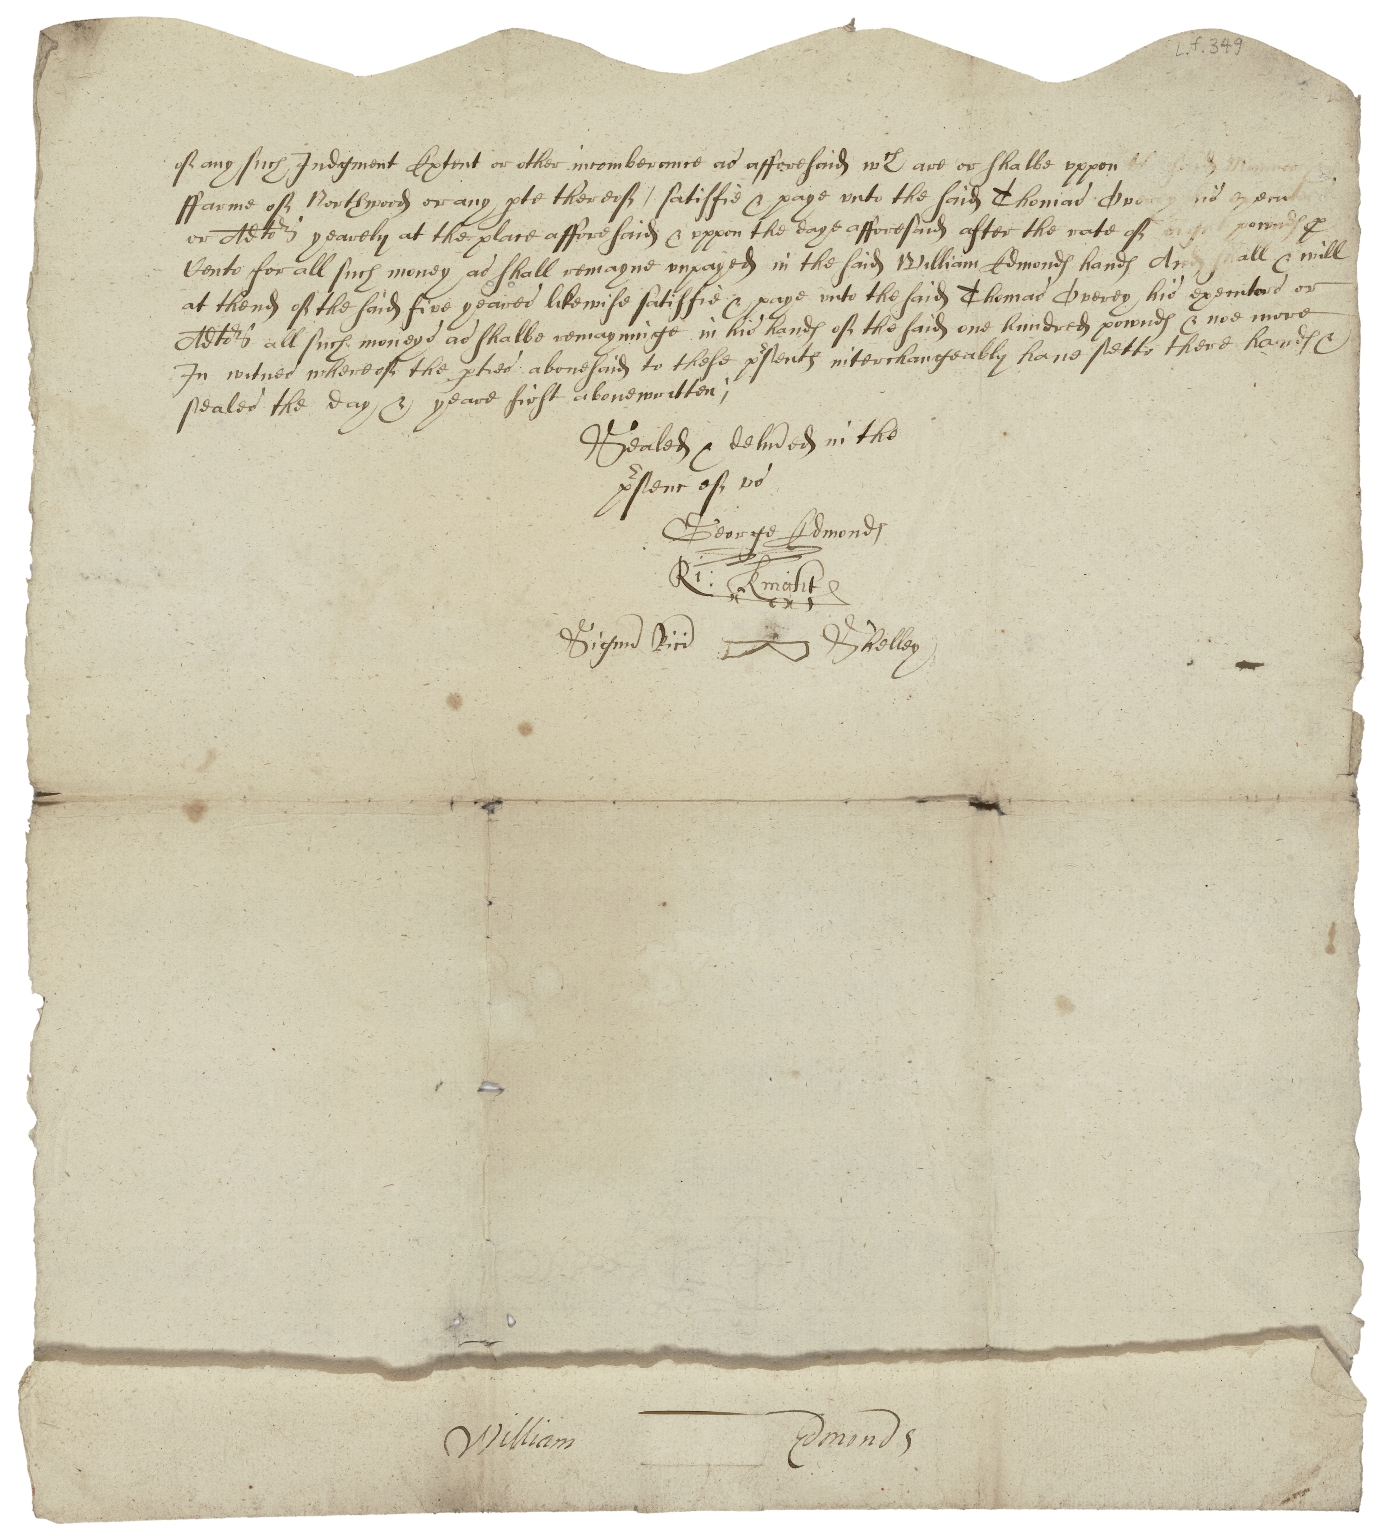 Articles of agreement between George Overey, late of Northwood in Stoughton (Sussex), and Thomas Overey, his son, of the one part and William Edmonds of Yapton (Sussex) of the other part